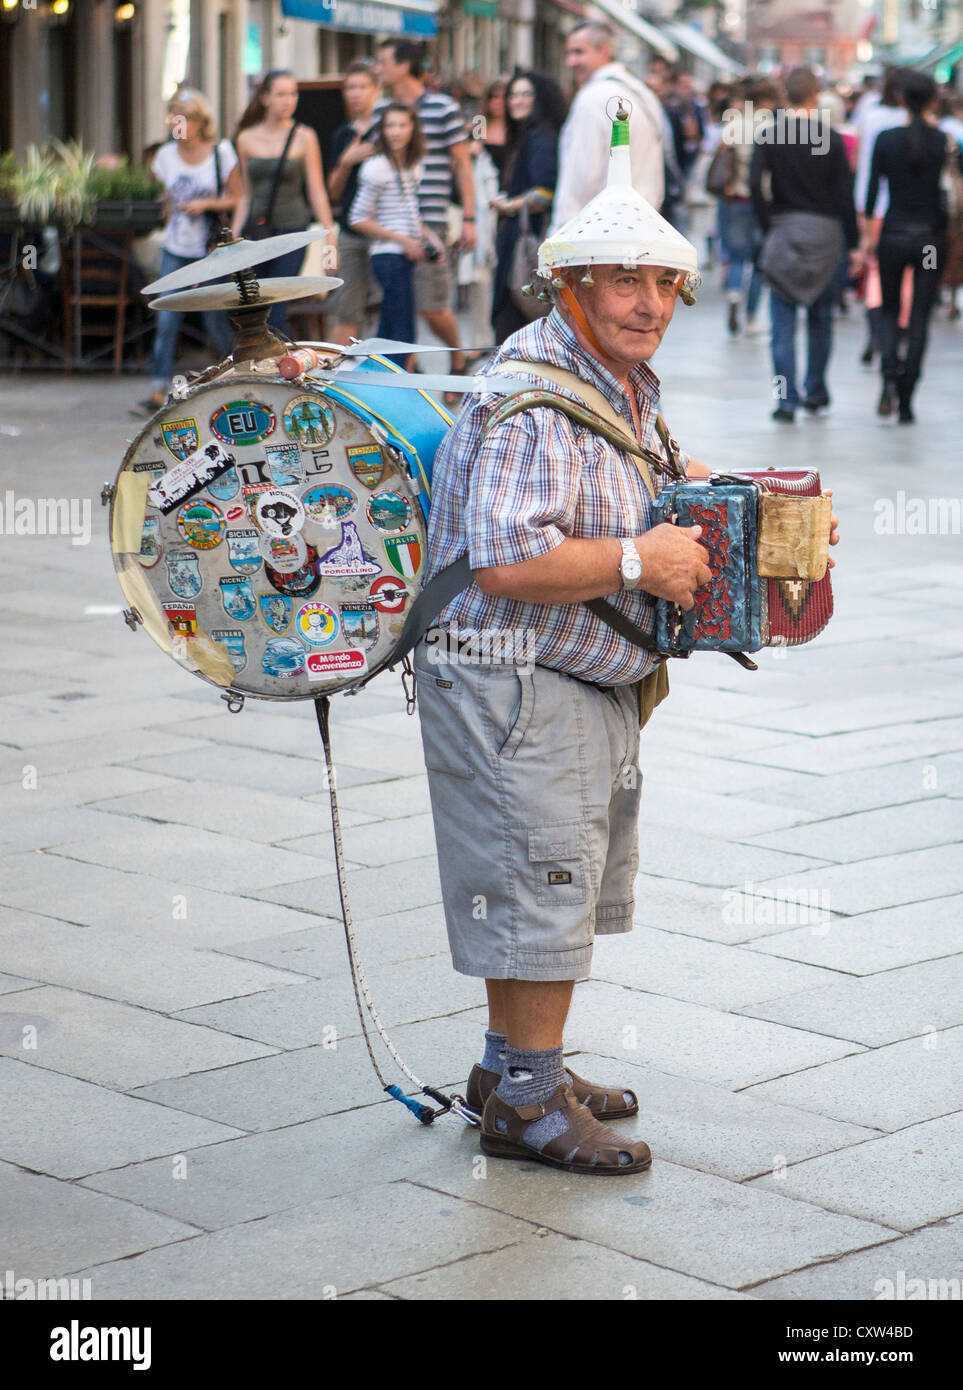 A one man band playing a concertina or small accordion,cymbals, bass drum and with a funnel with bells on his head. - Stock Image